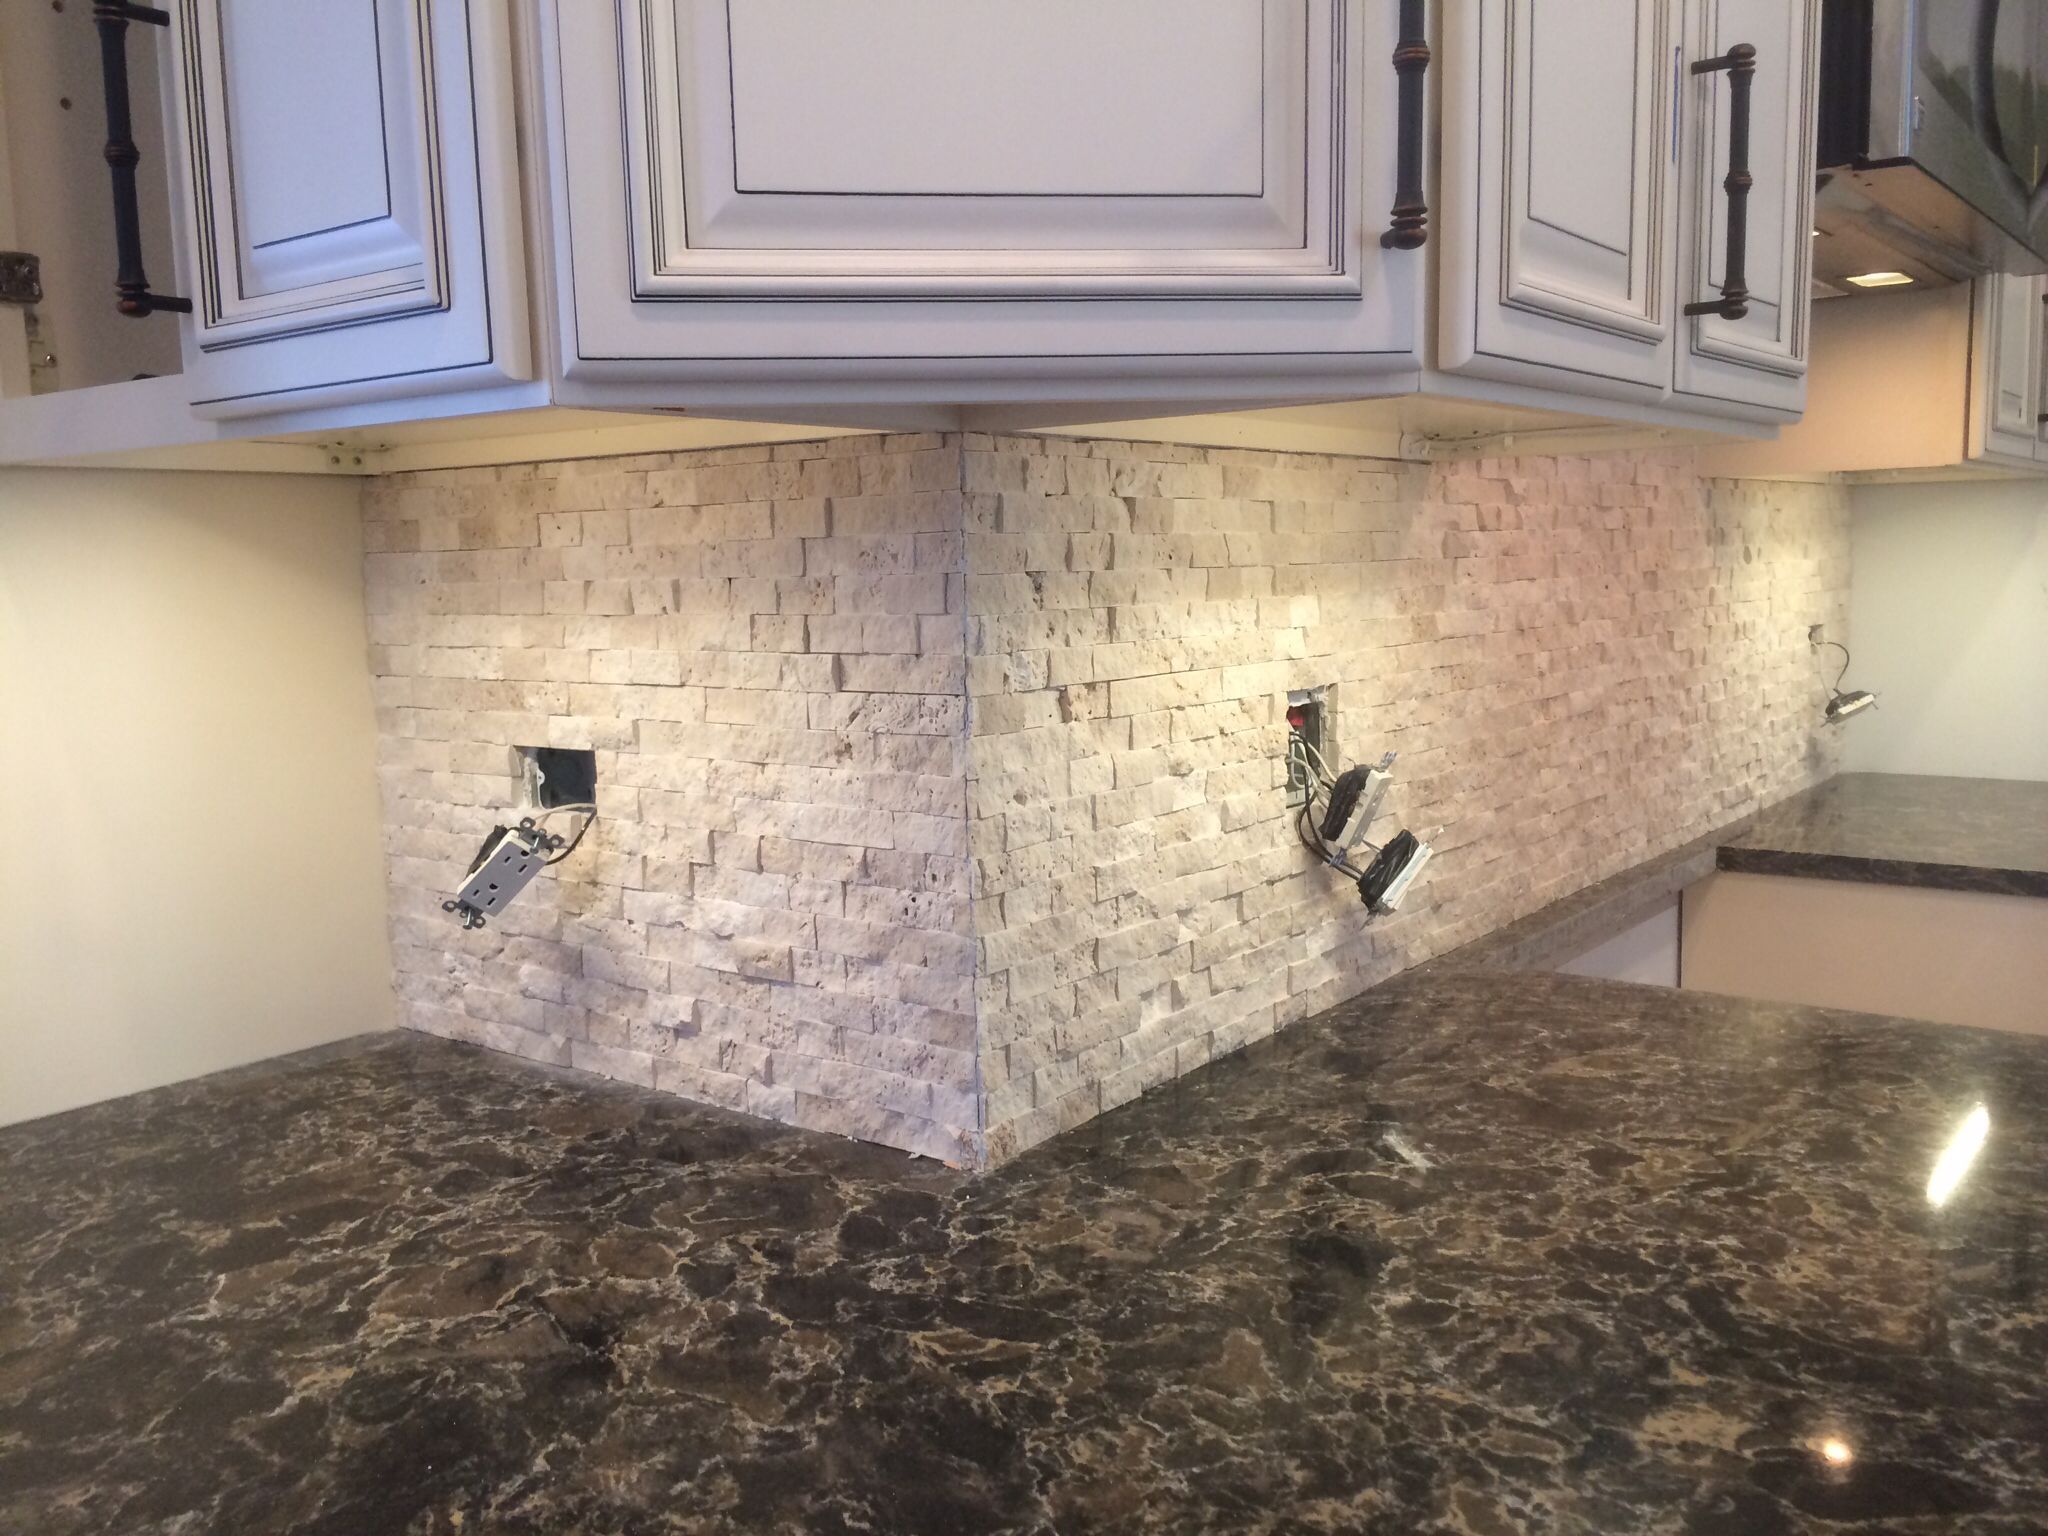 tampa discount portland caring island material suppliers crushed tile countertop lowes full of size seattle granite for recycled quartz glass kitchen online countertops